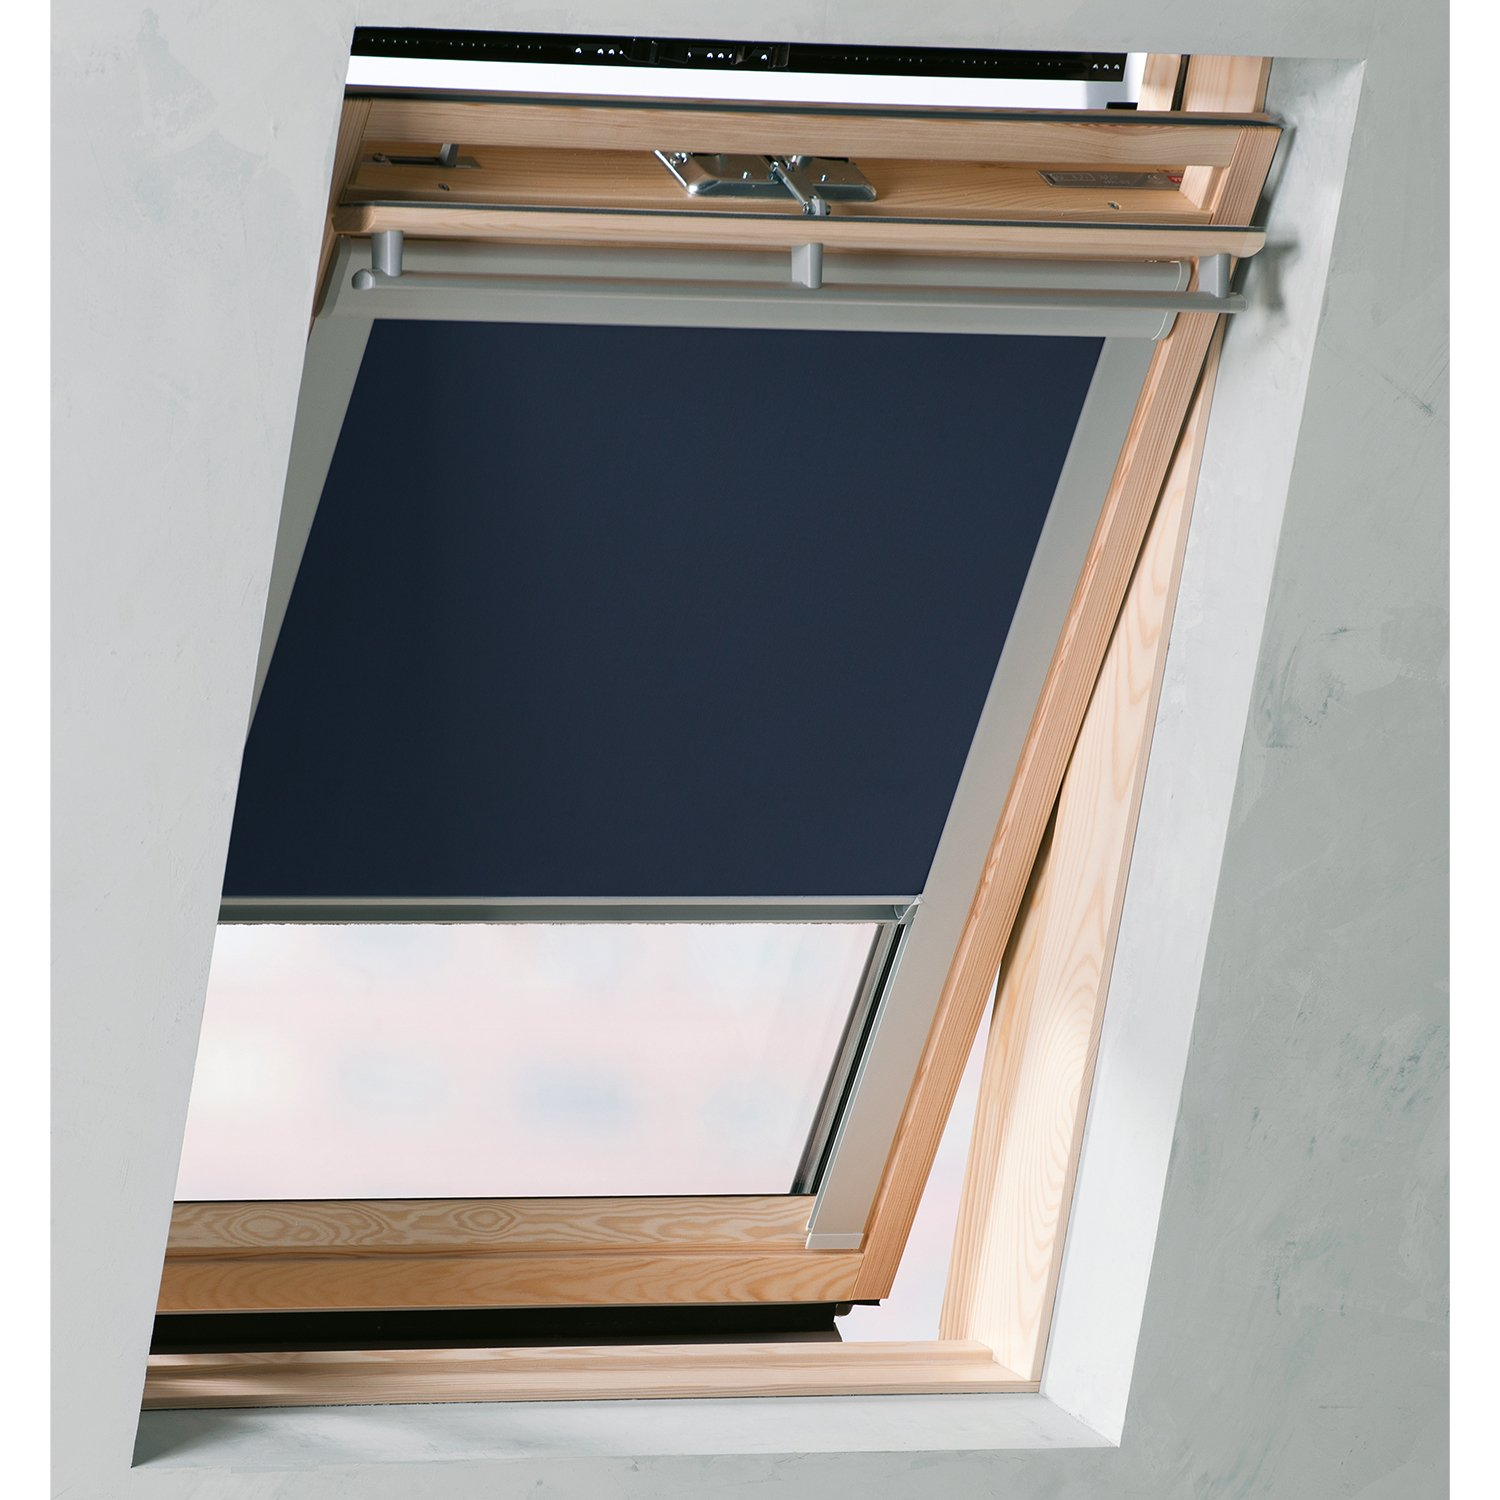 velux ggu m04 awesome velux deck mounted solar powered vss m skylight with velux ggu m04 velux. Black Bedroom Furniture Sets. Home Design Ideas